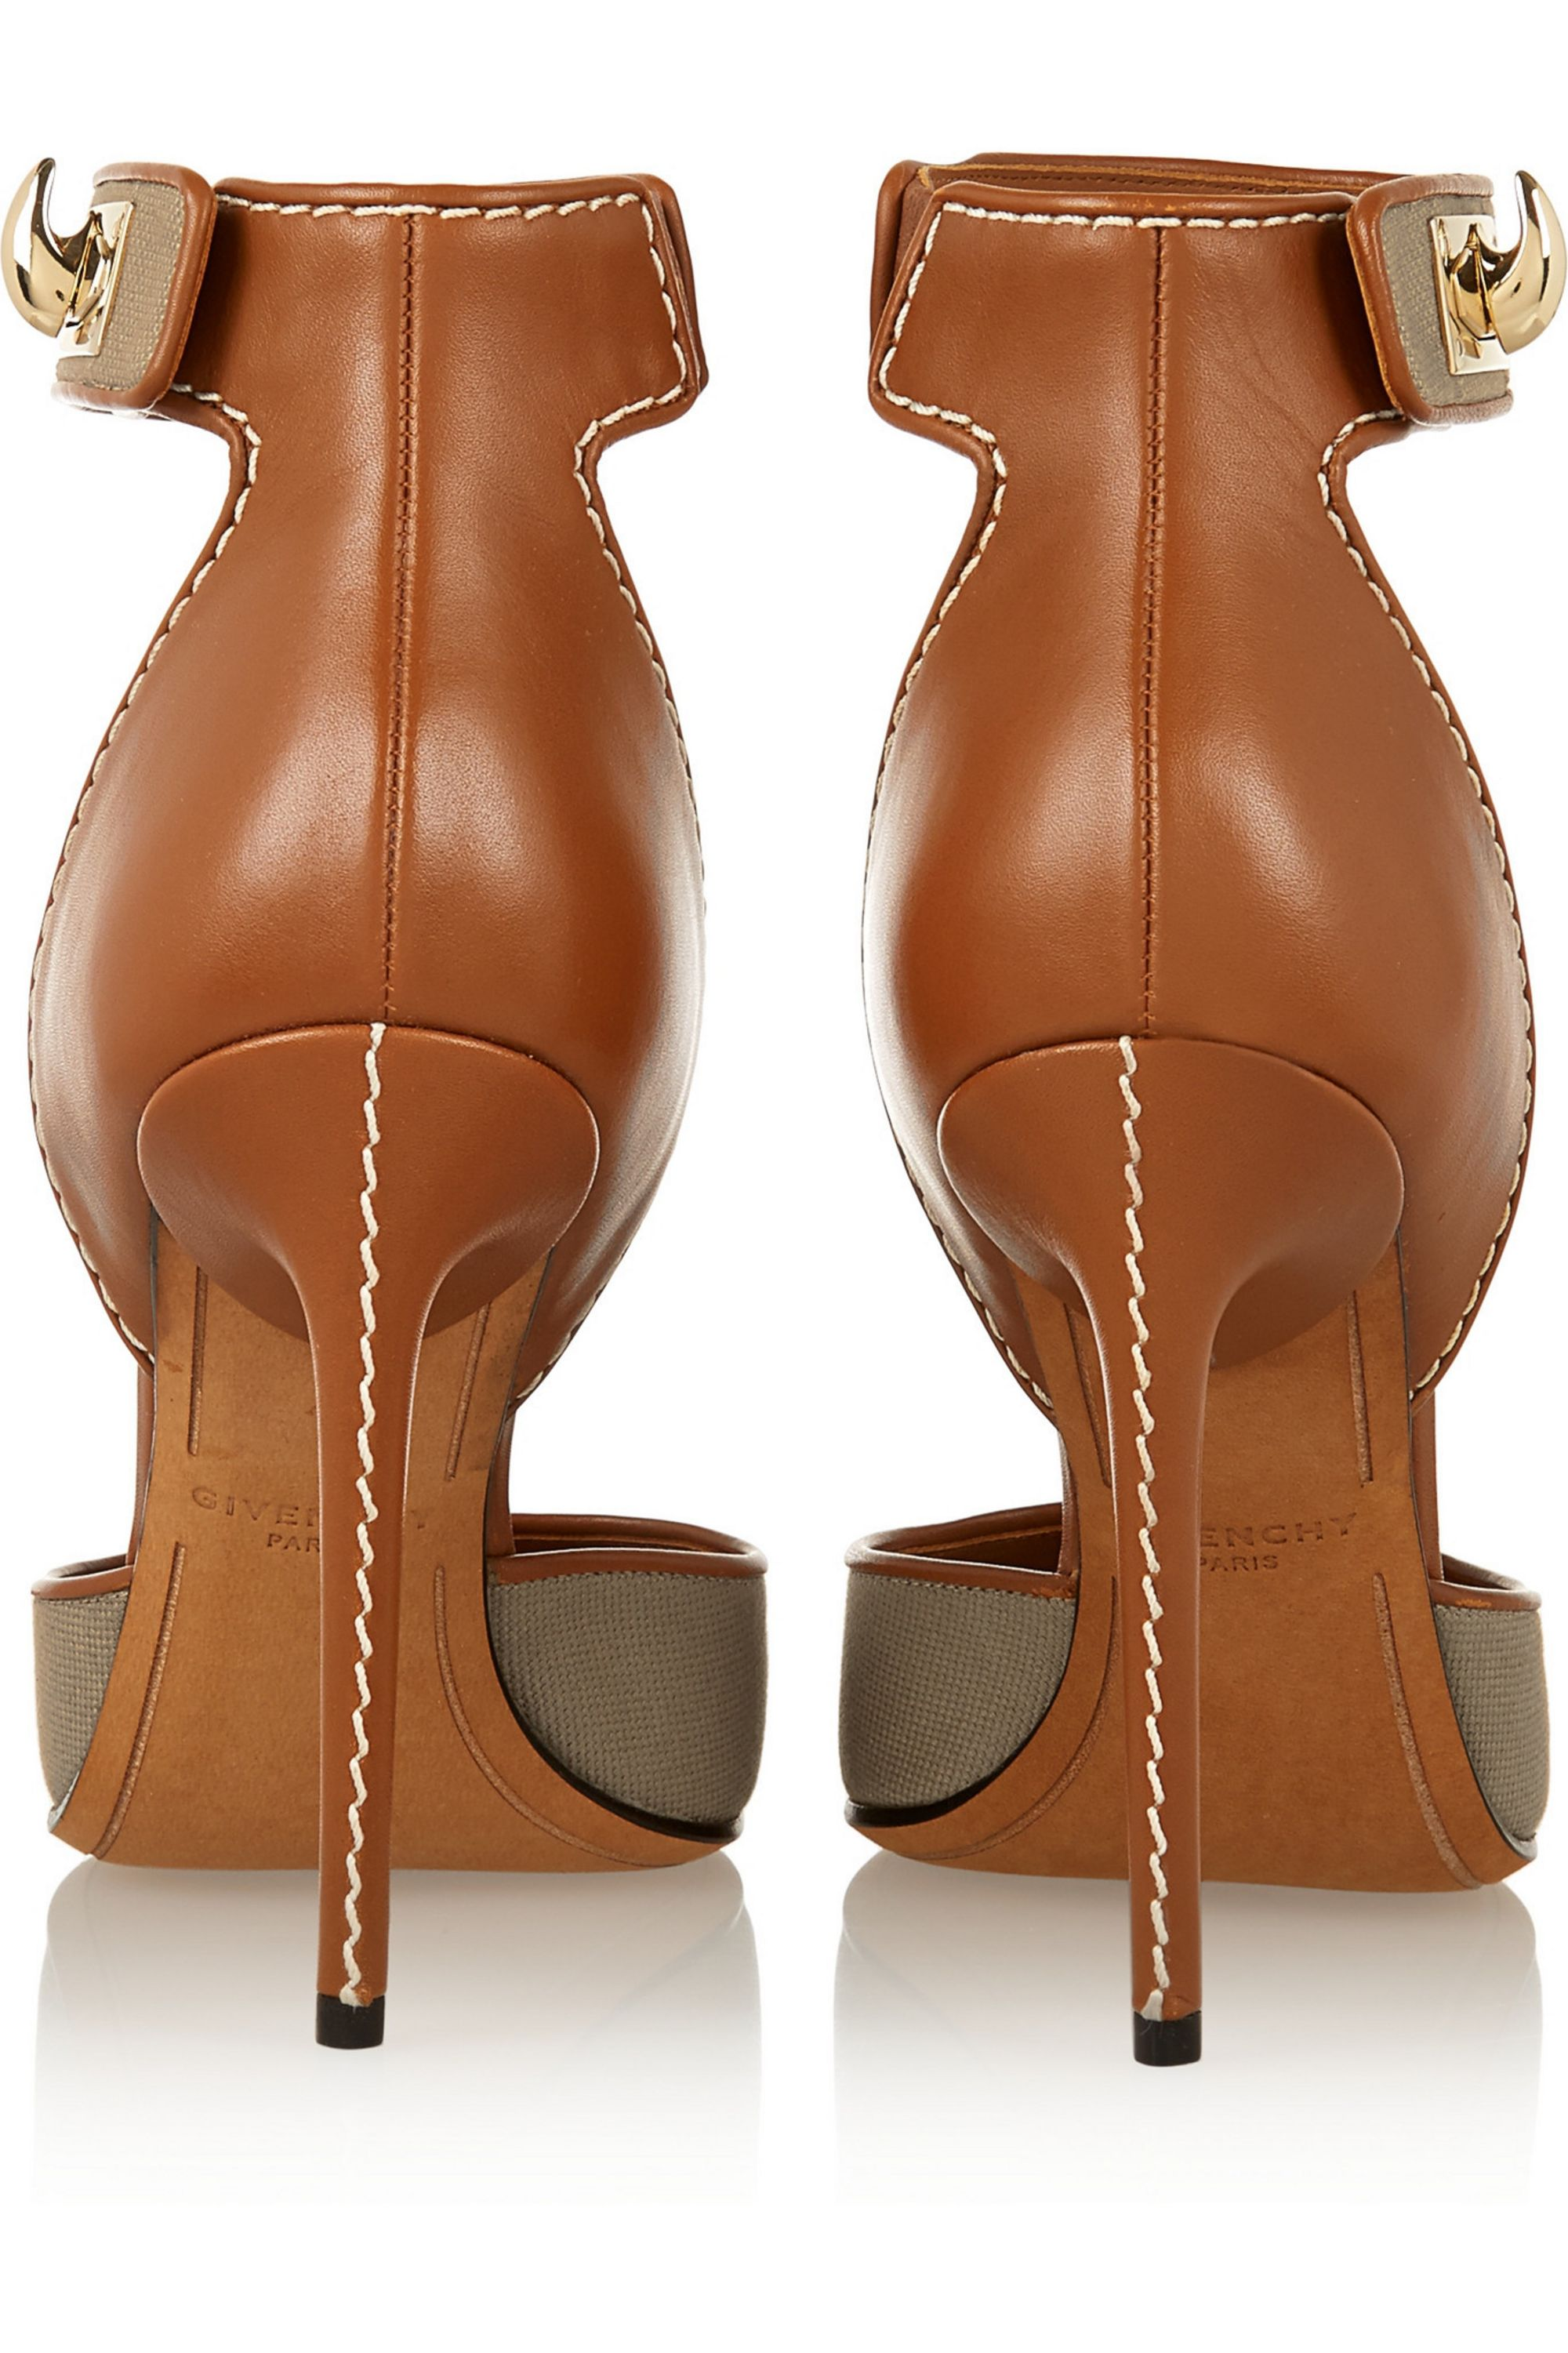 Givenchy Shark Lock sandals in brown leather and canvas